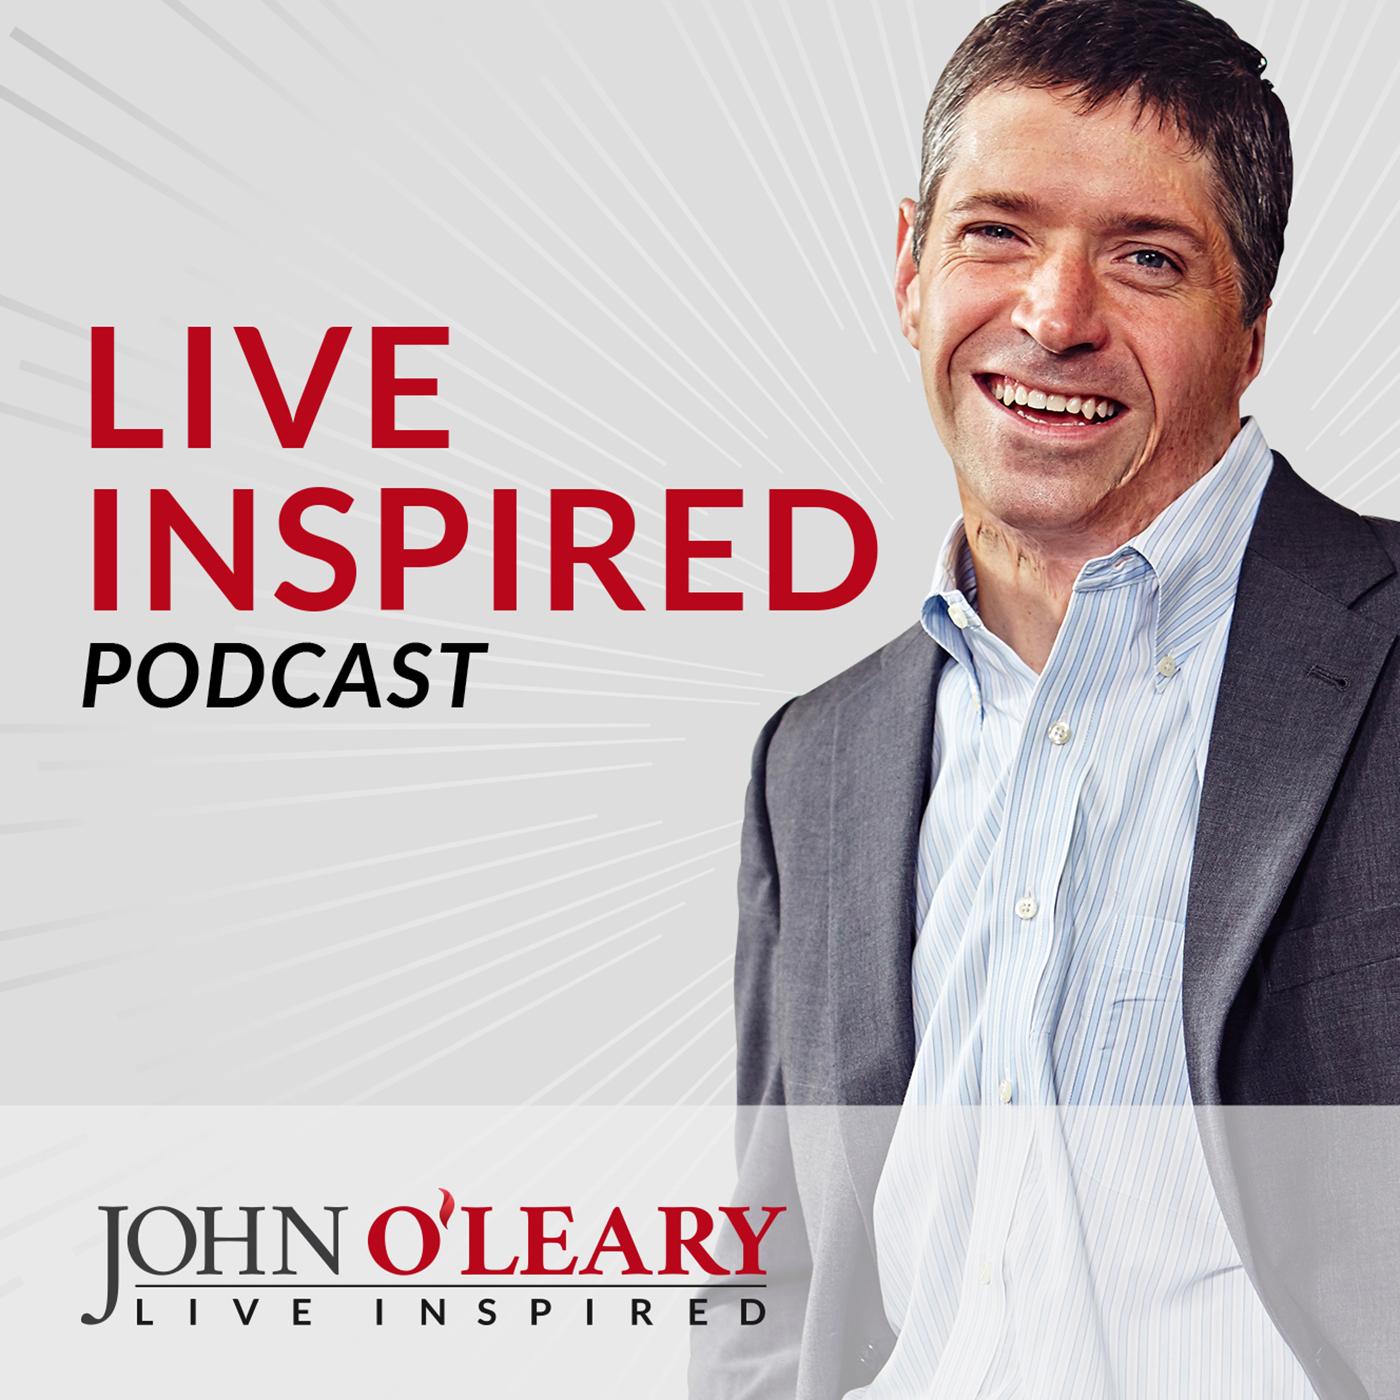 Live Inspired Podcast With John Oleary Tendencies Kaos Lost Mom Navy M